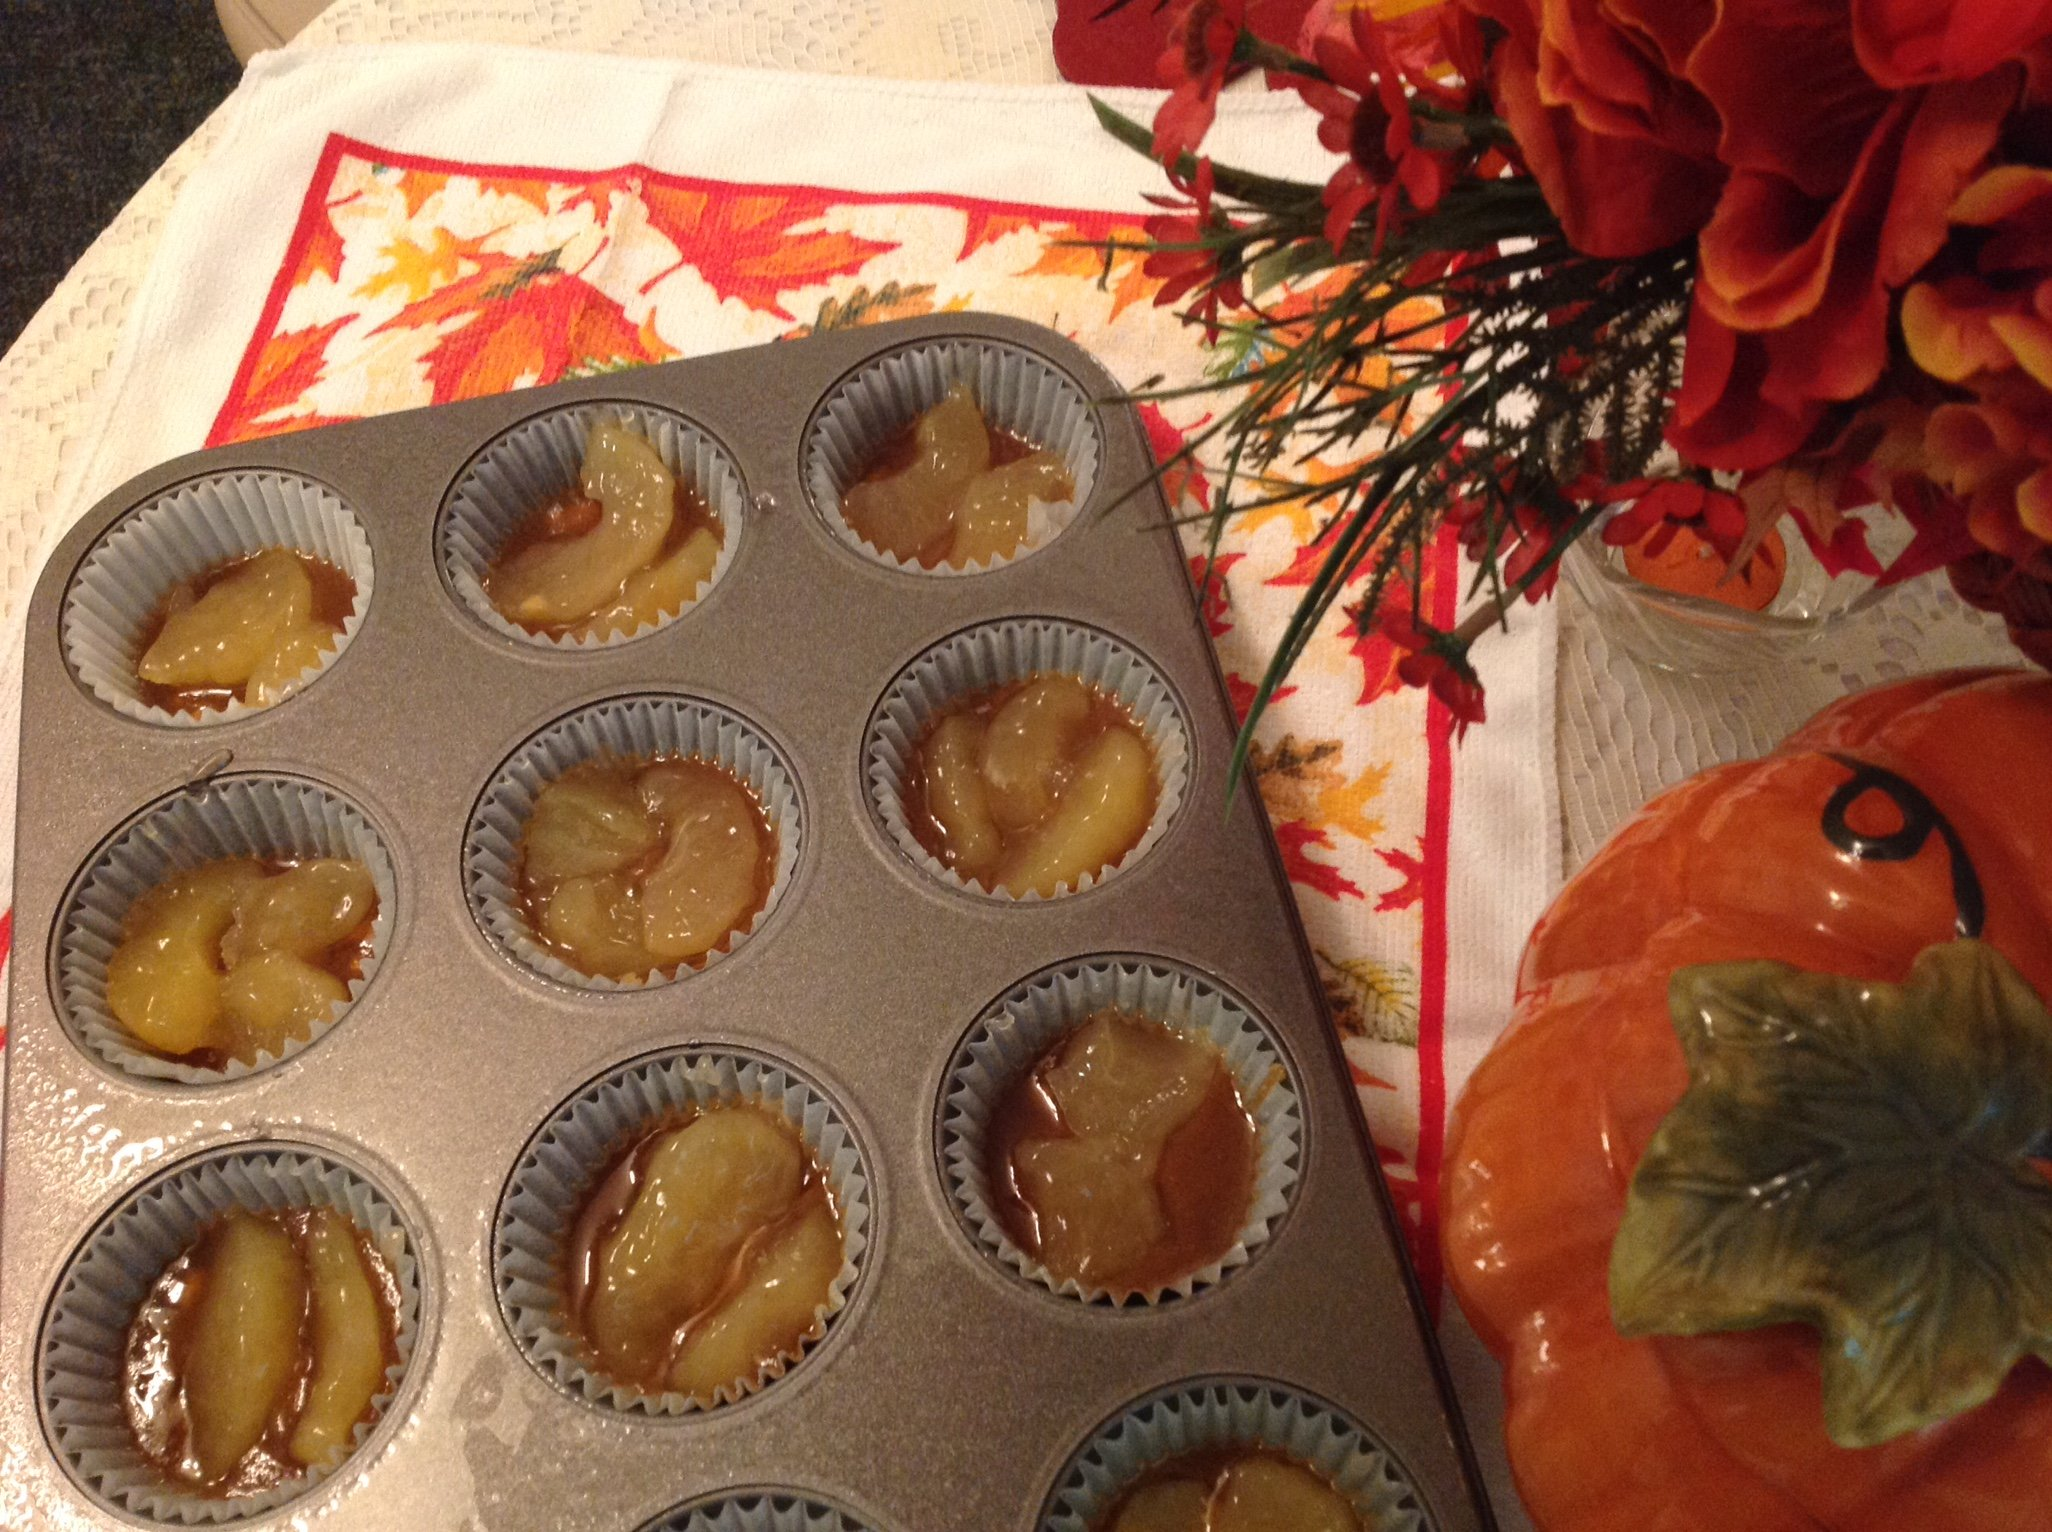 Caramel Apple Upside Down Cupcakes Recipe